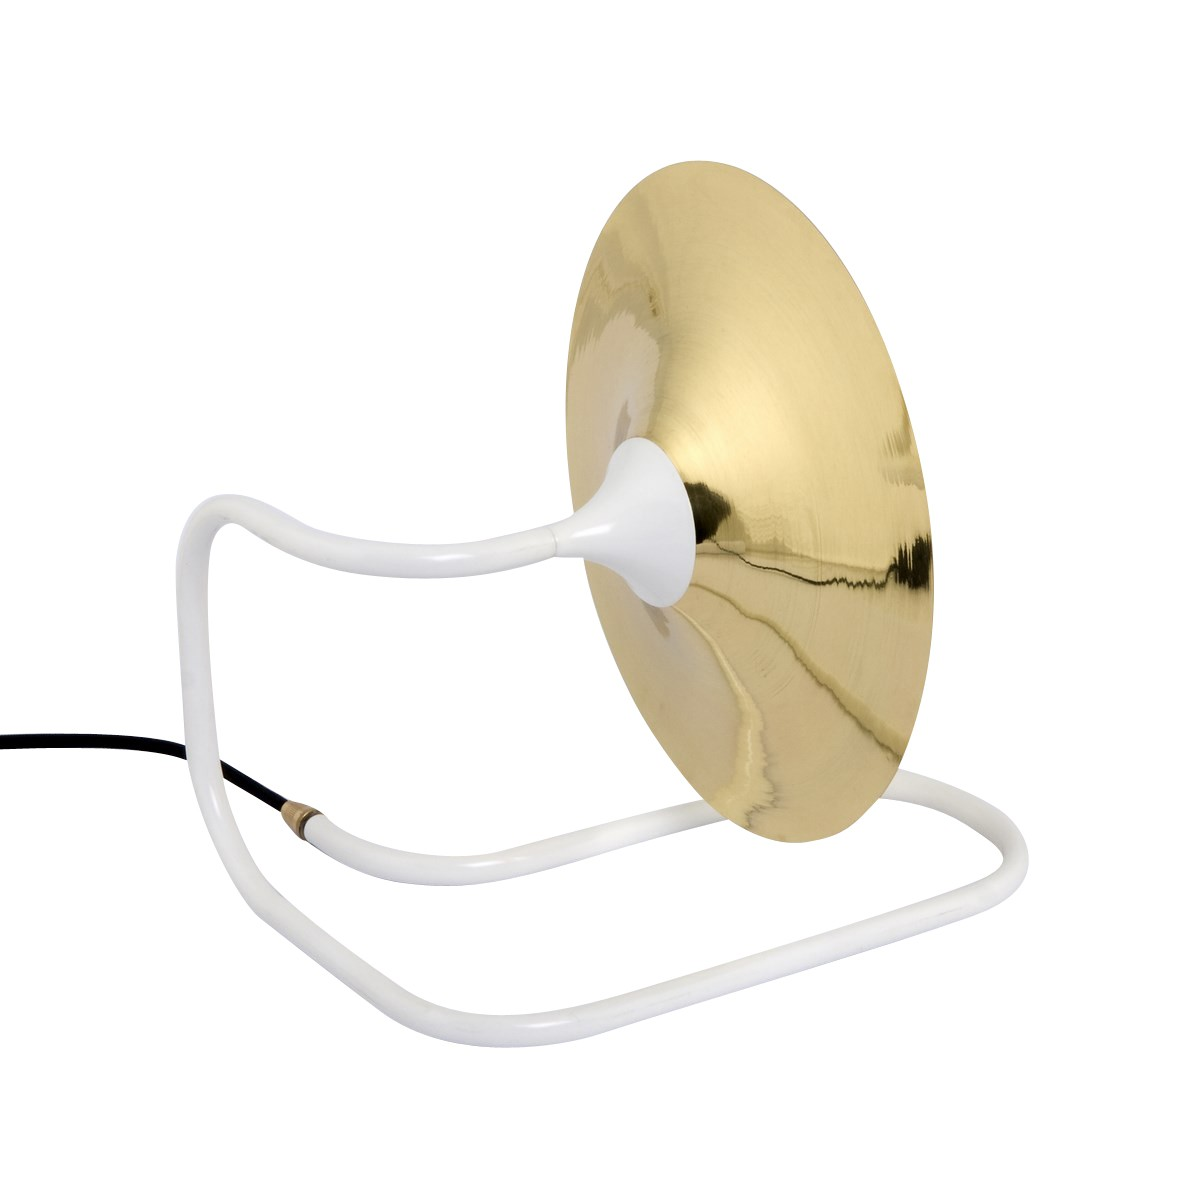 Turbaya Table Lamp Brass and White with Black Cable